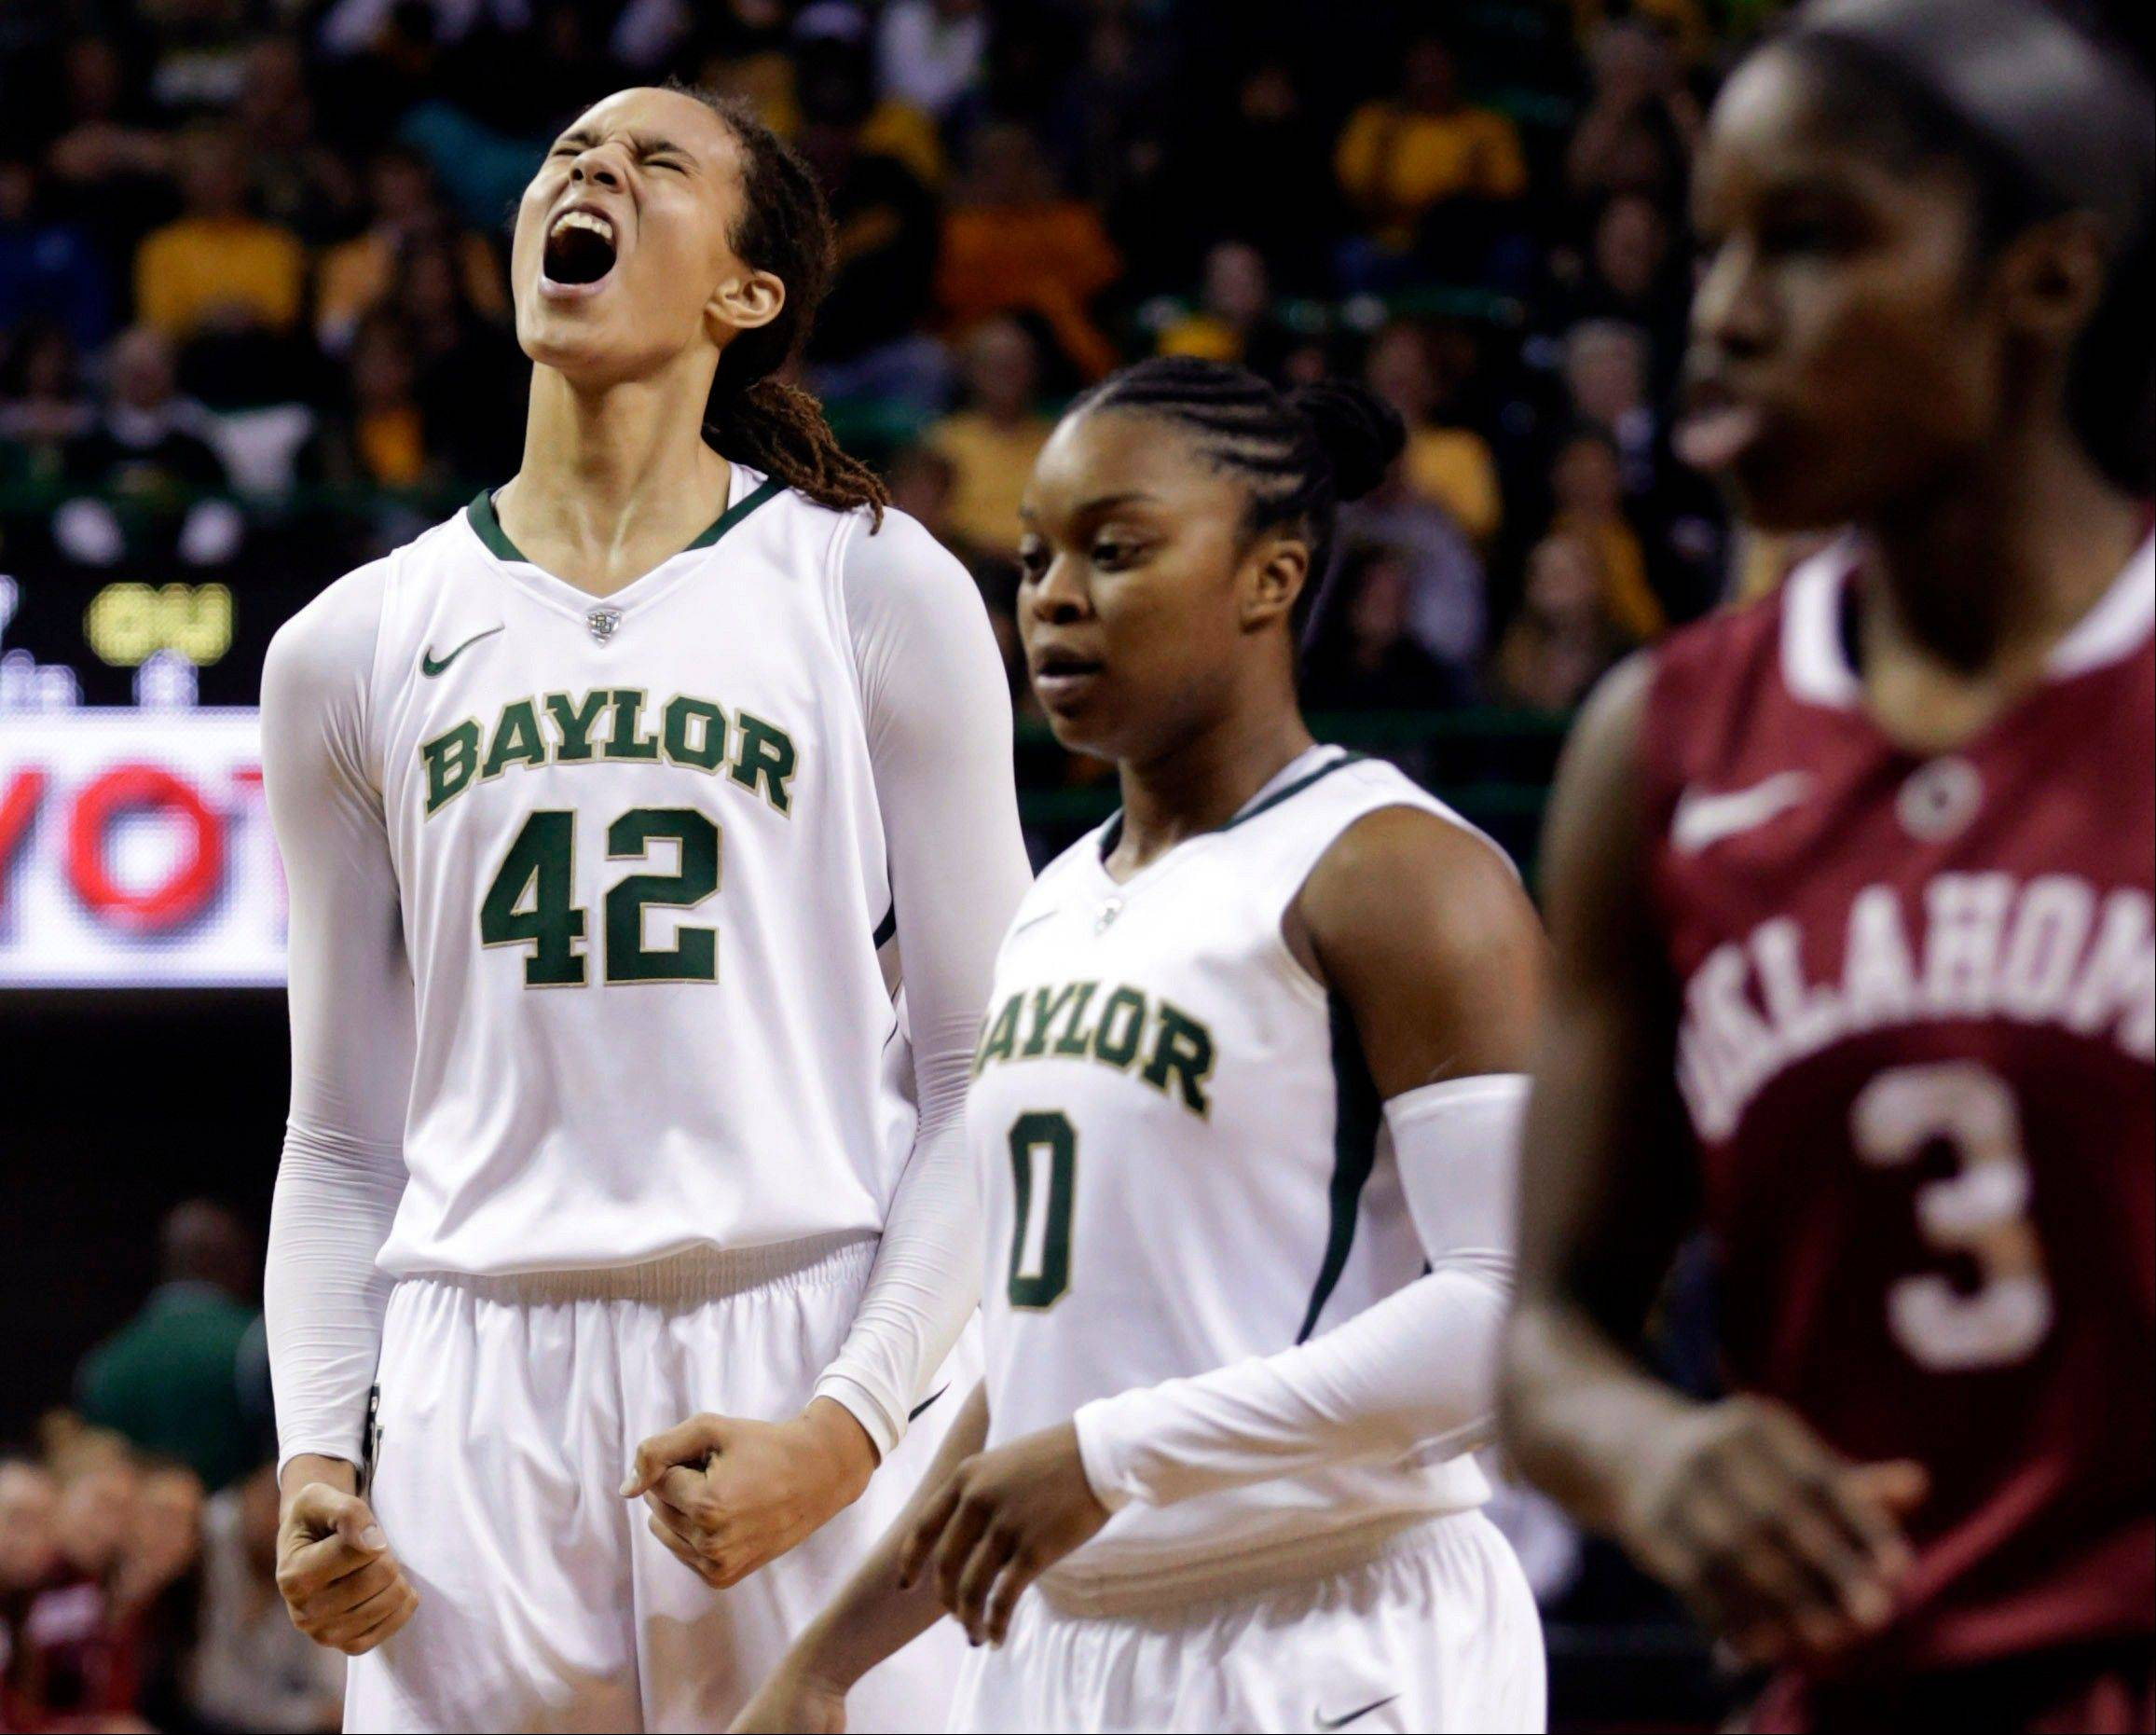 In this Jan. 26, 2013, file photo, Baylor's Brittney Griner (42) celebrates after breaking the NCAA women's career record for blocks as Odyssey Sims (0) and Oklahoma's Aaryn Ellenberg (3) stand by during the second half of a college basketball game in Waco Texas. Baylor was announced Monday, March 18, to join Connecticut, Stanford and Notre Dame as a No. 1 seed in the women's tournament, marking the second straight season those four schools were the top seeds.